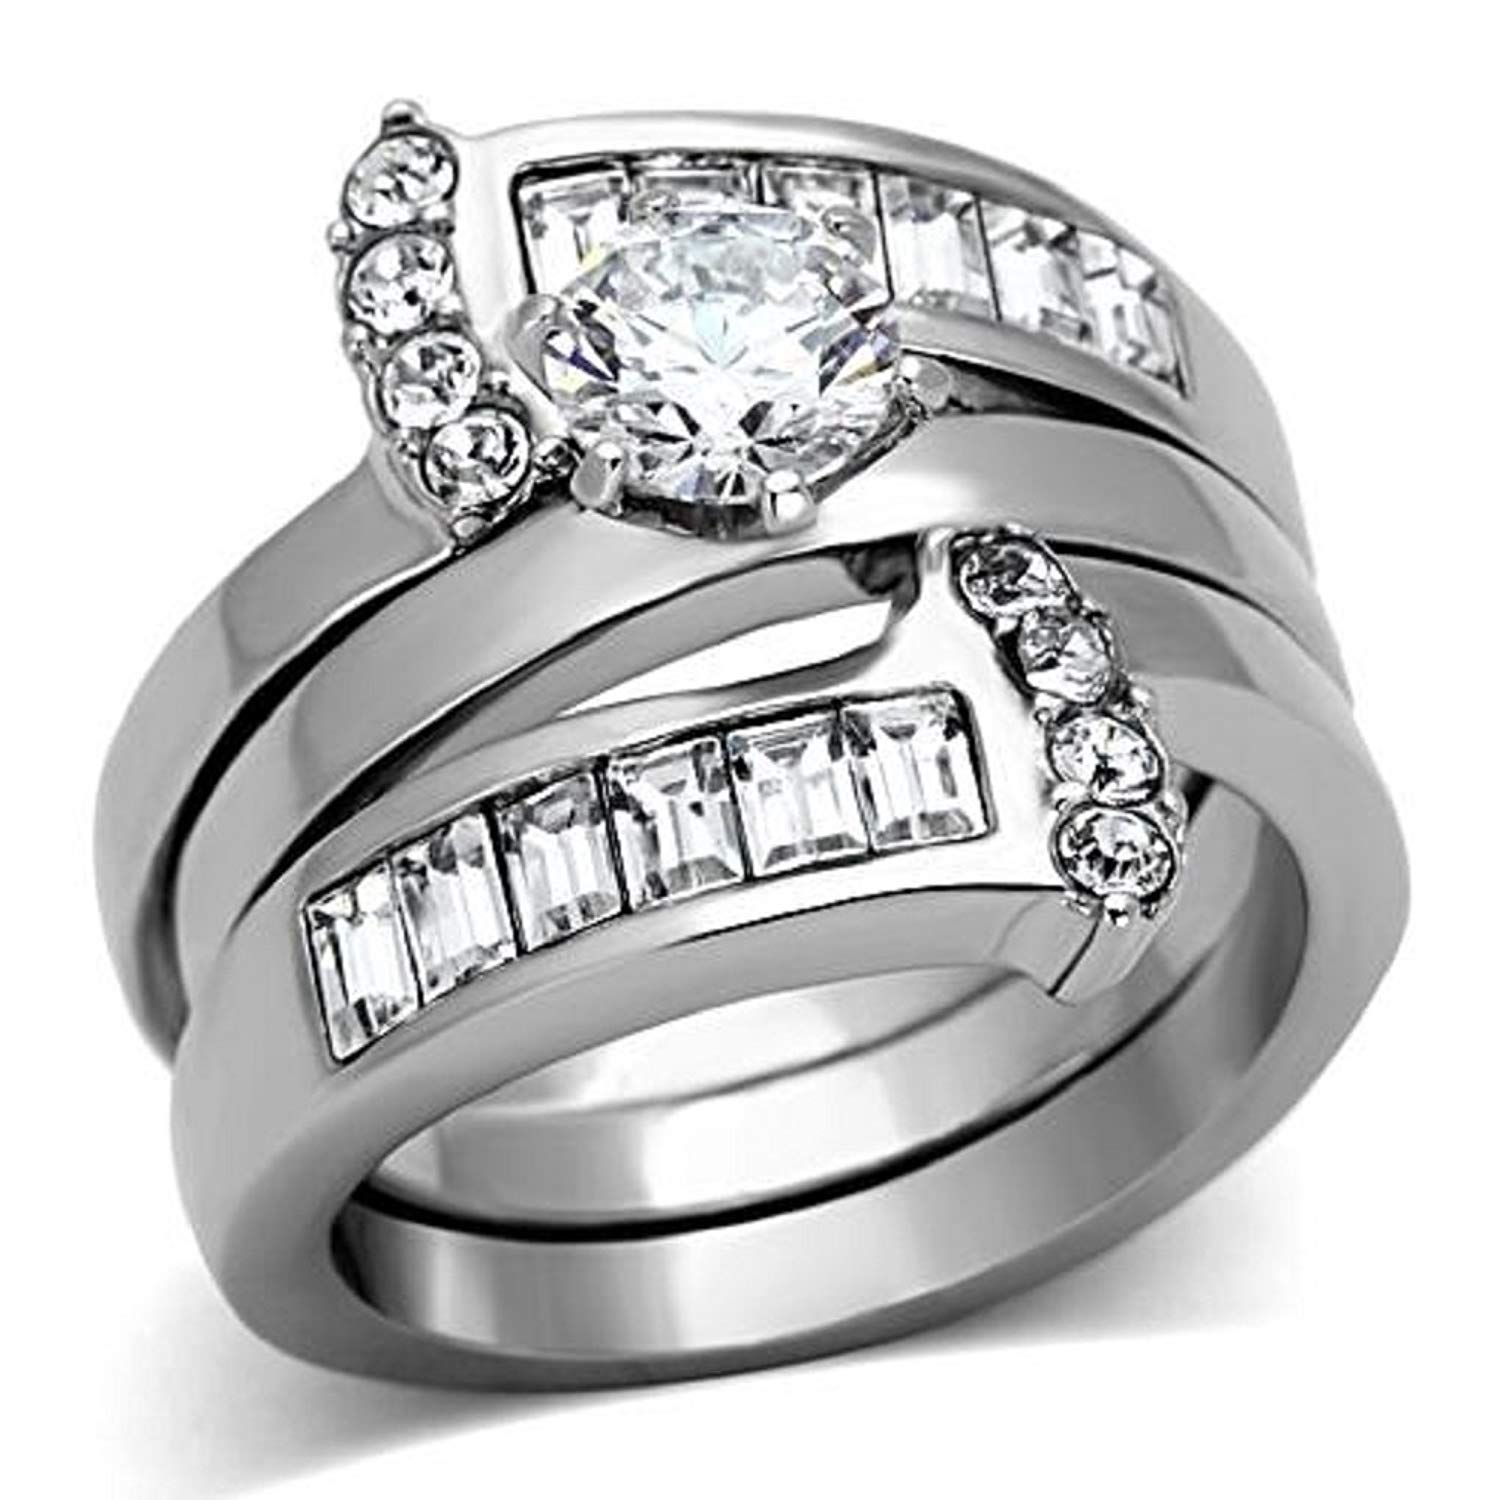 13++ Stainless steel wedding rings sets information